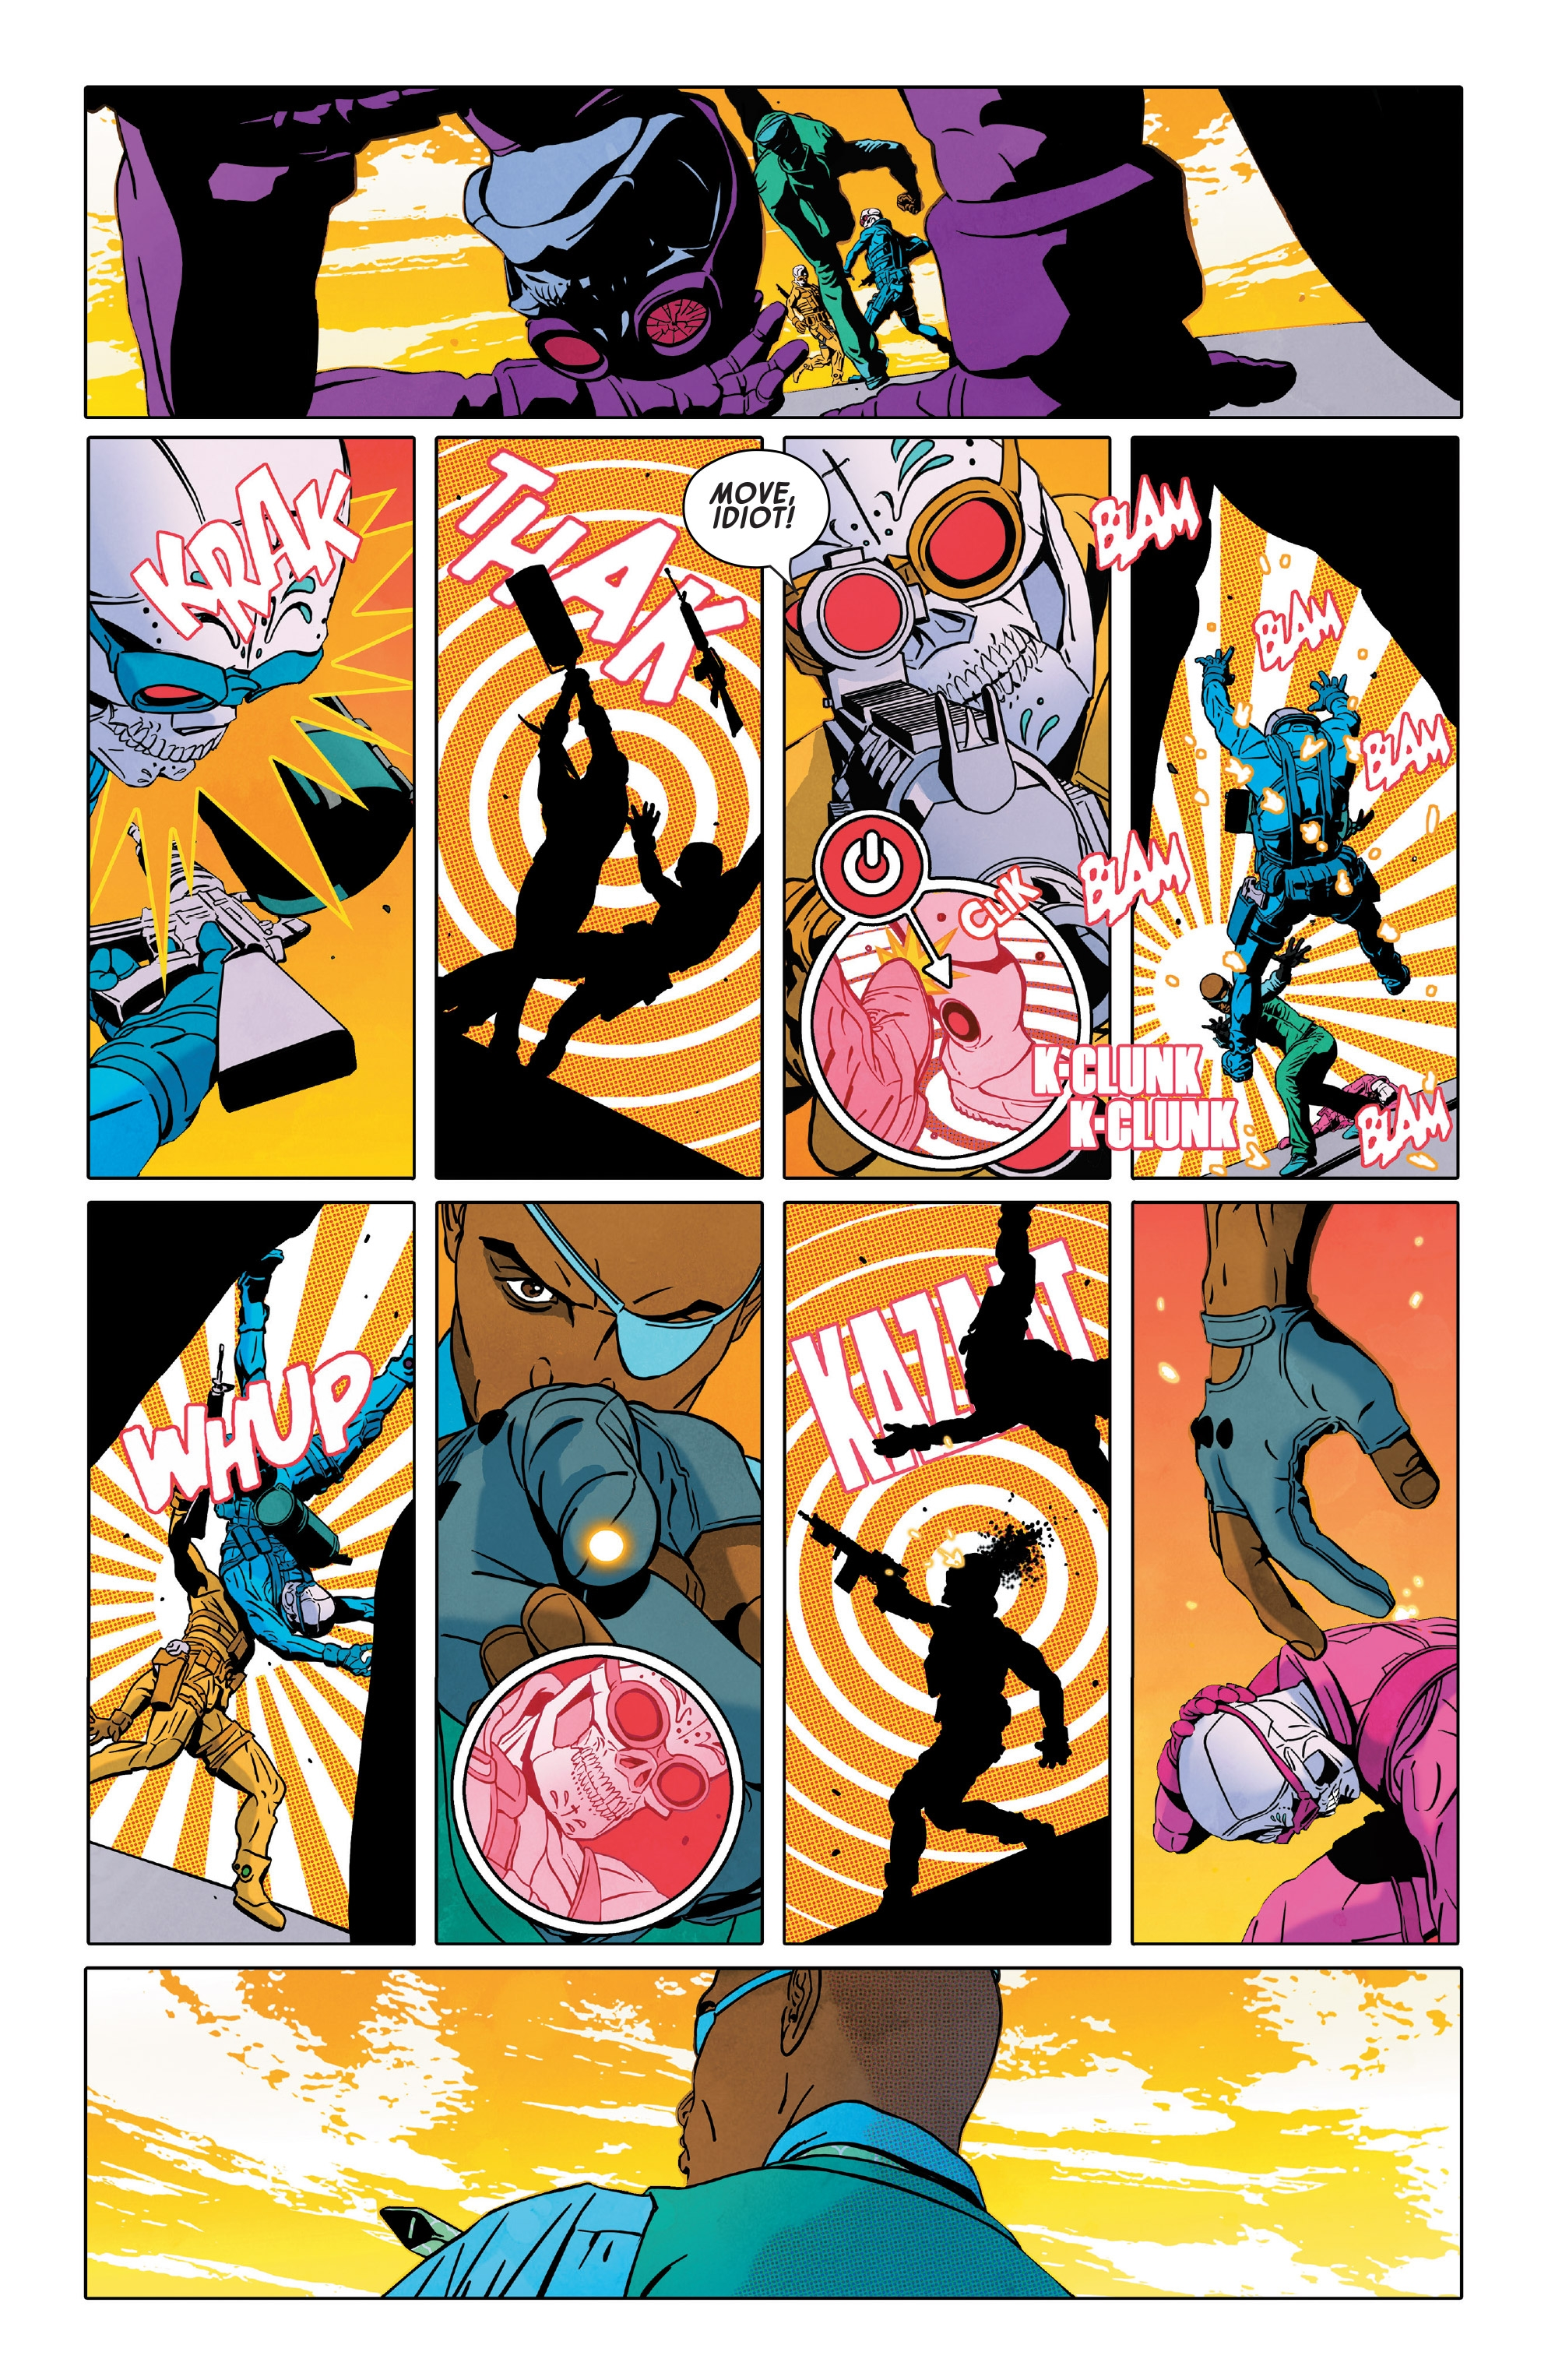 Read online Nick Fury comic -  Issue #3 - 12